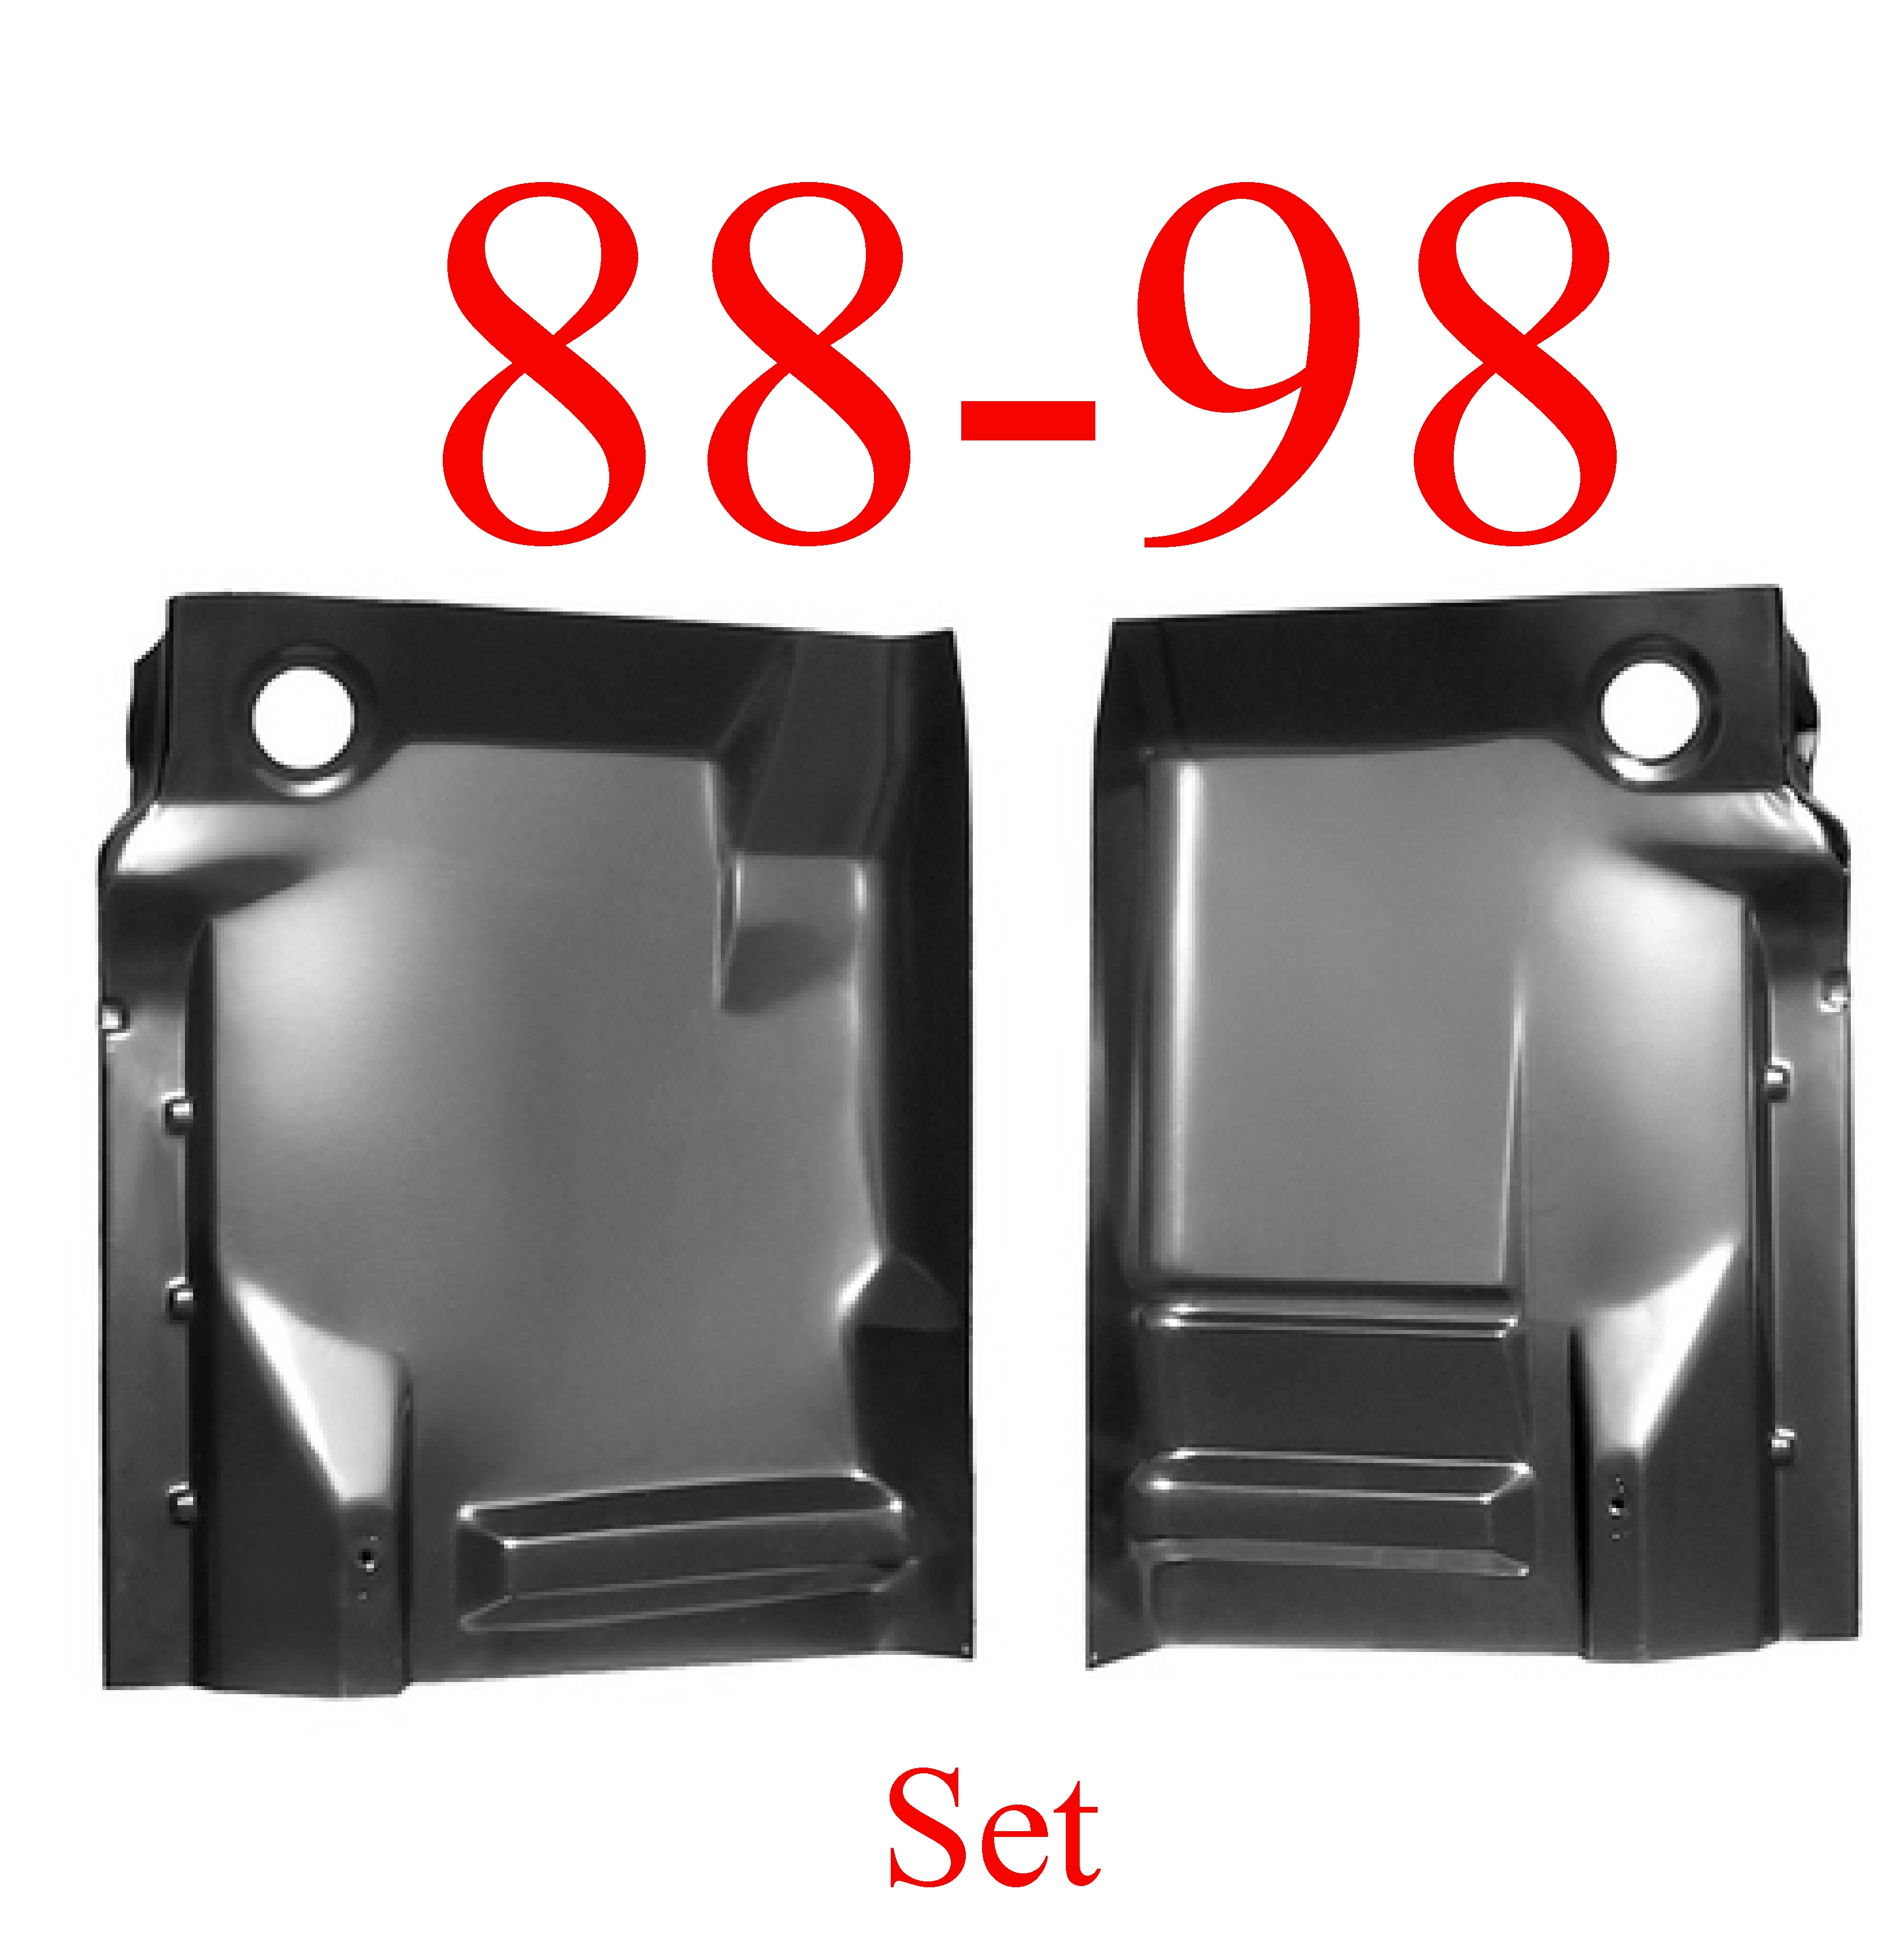 88-98 Chevy GMC Front Complete Extended Floor Panel Set